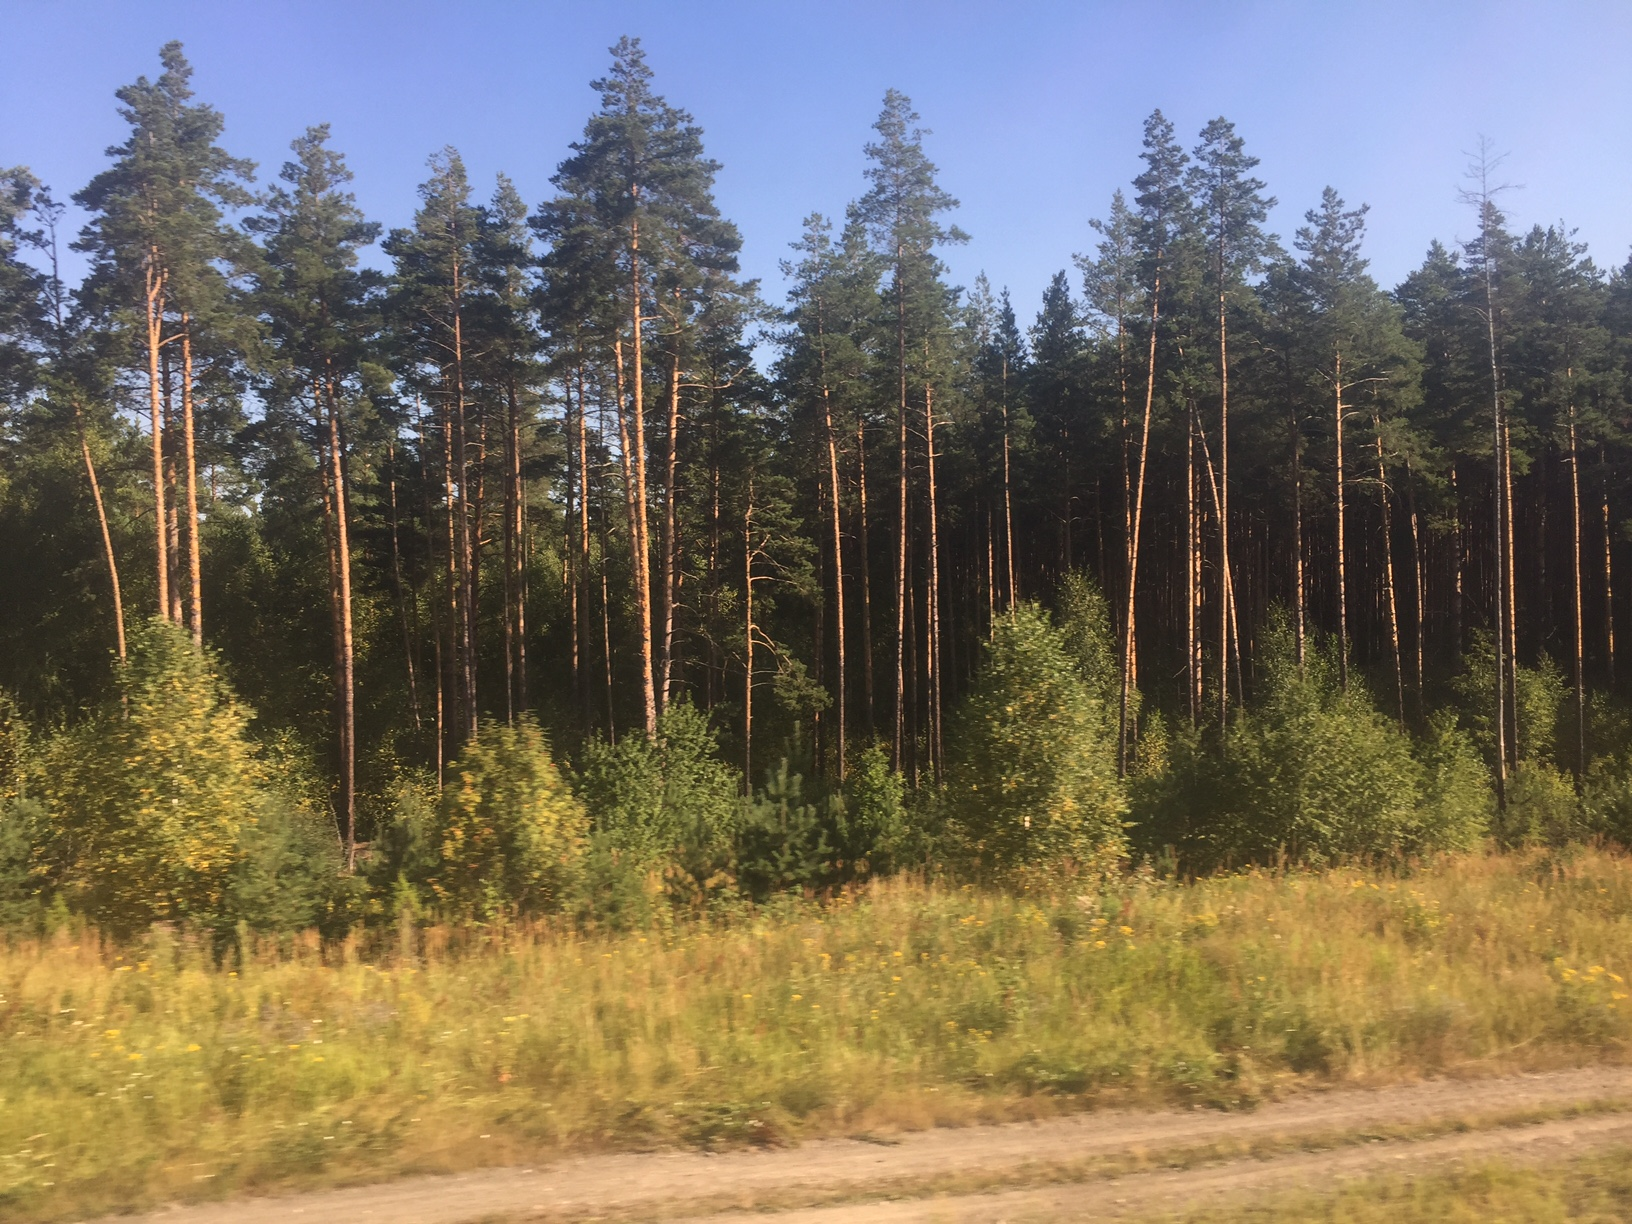 Russian Forestry And Siberian Pine Woodlands Co Uk